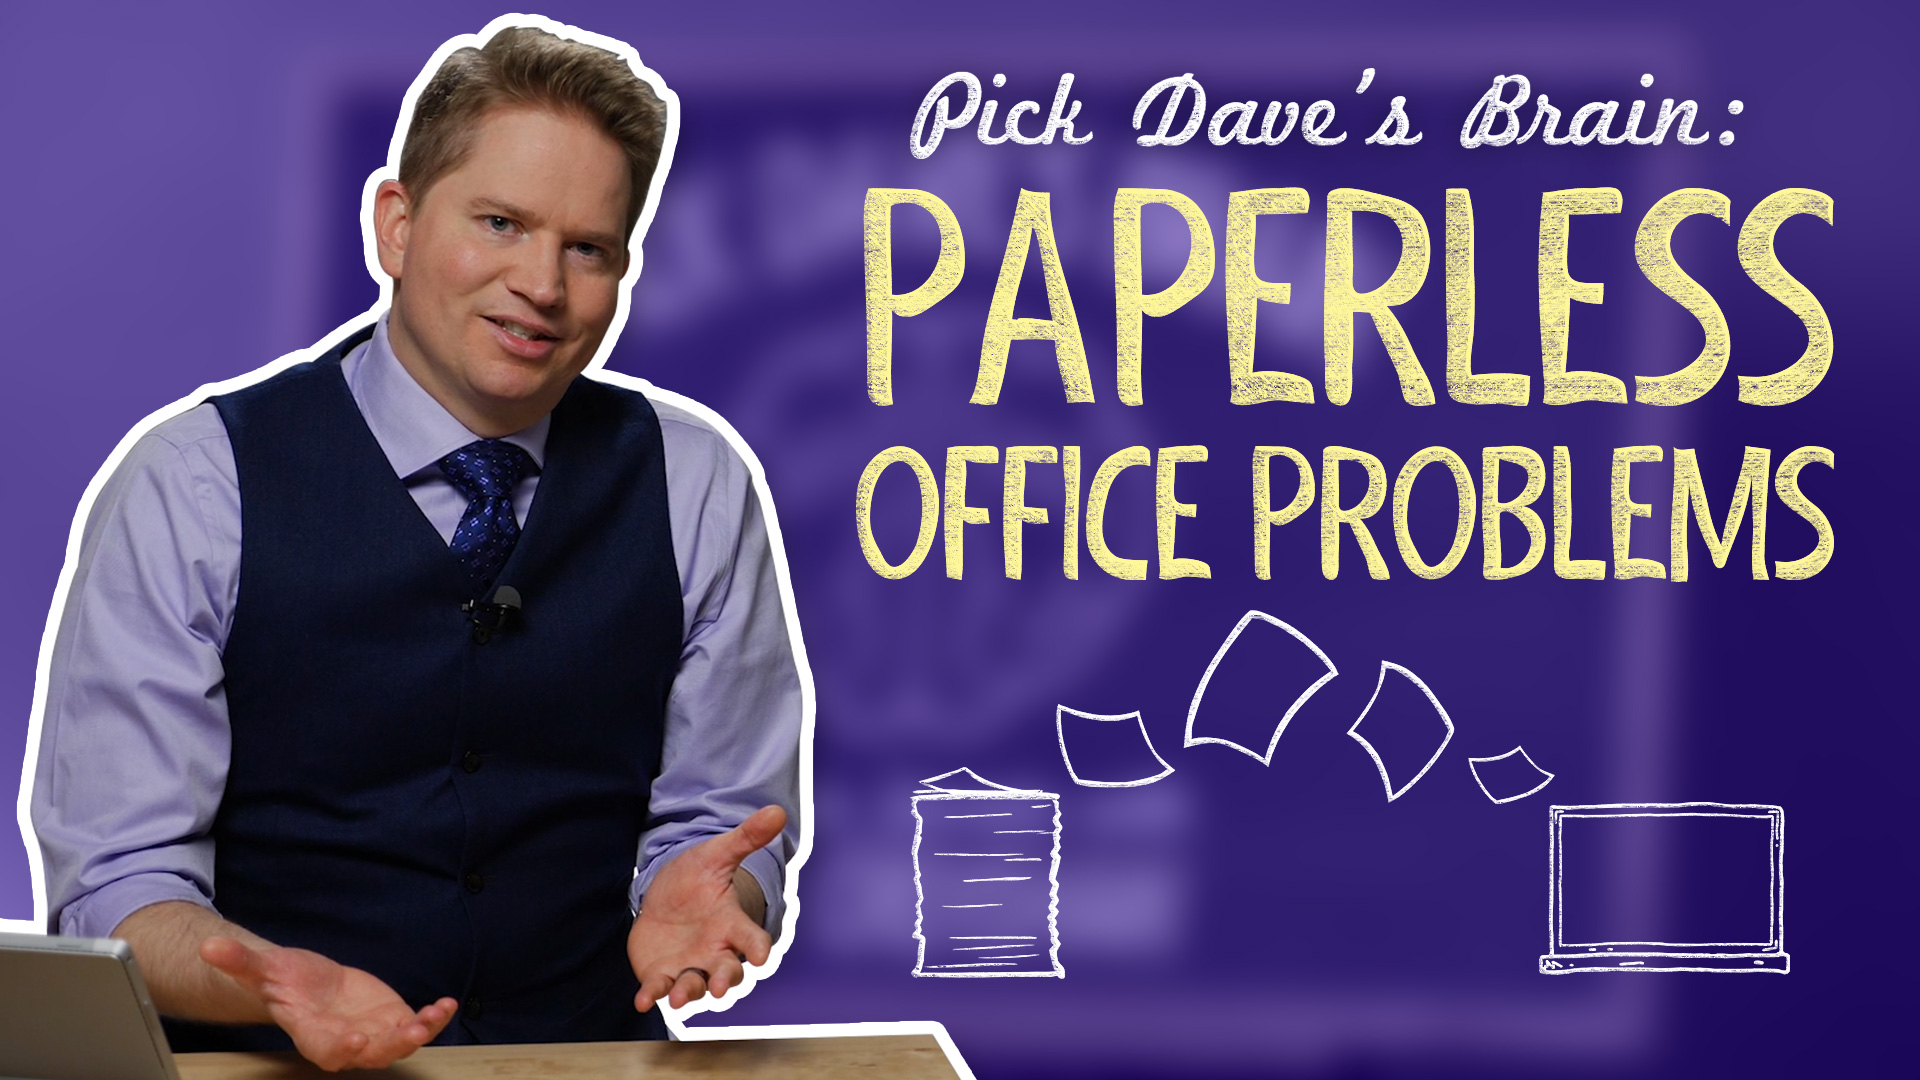 Is your paperless office wasting your time? – Pick Dave's Brain